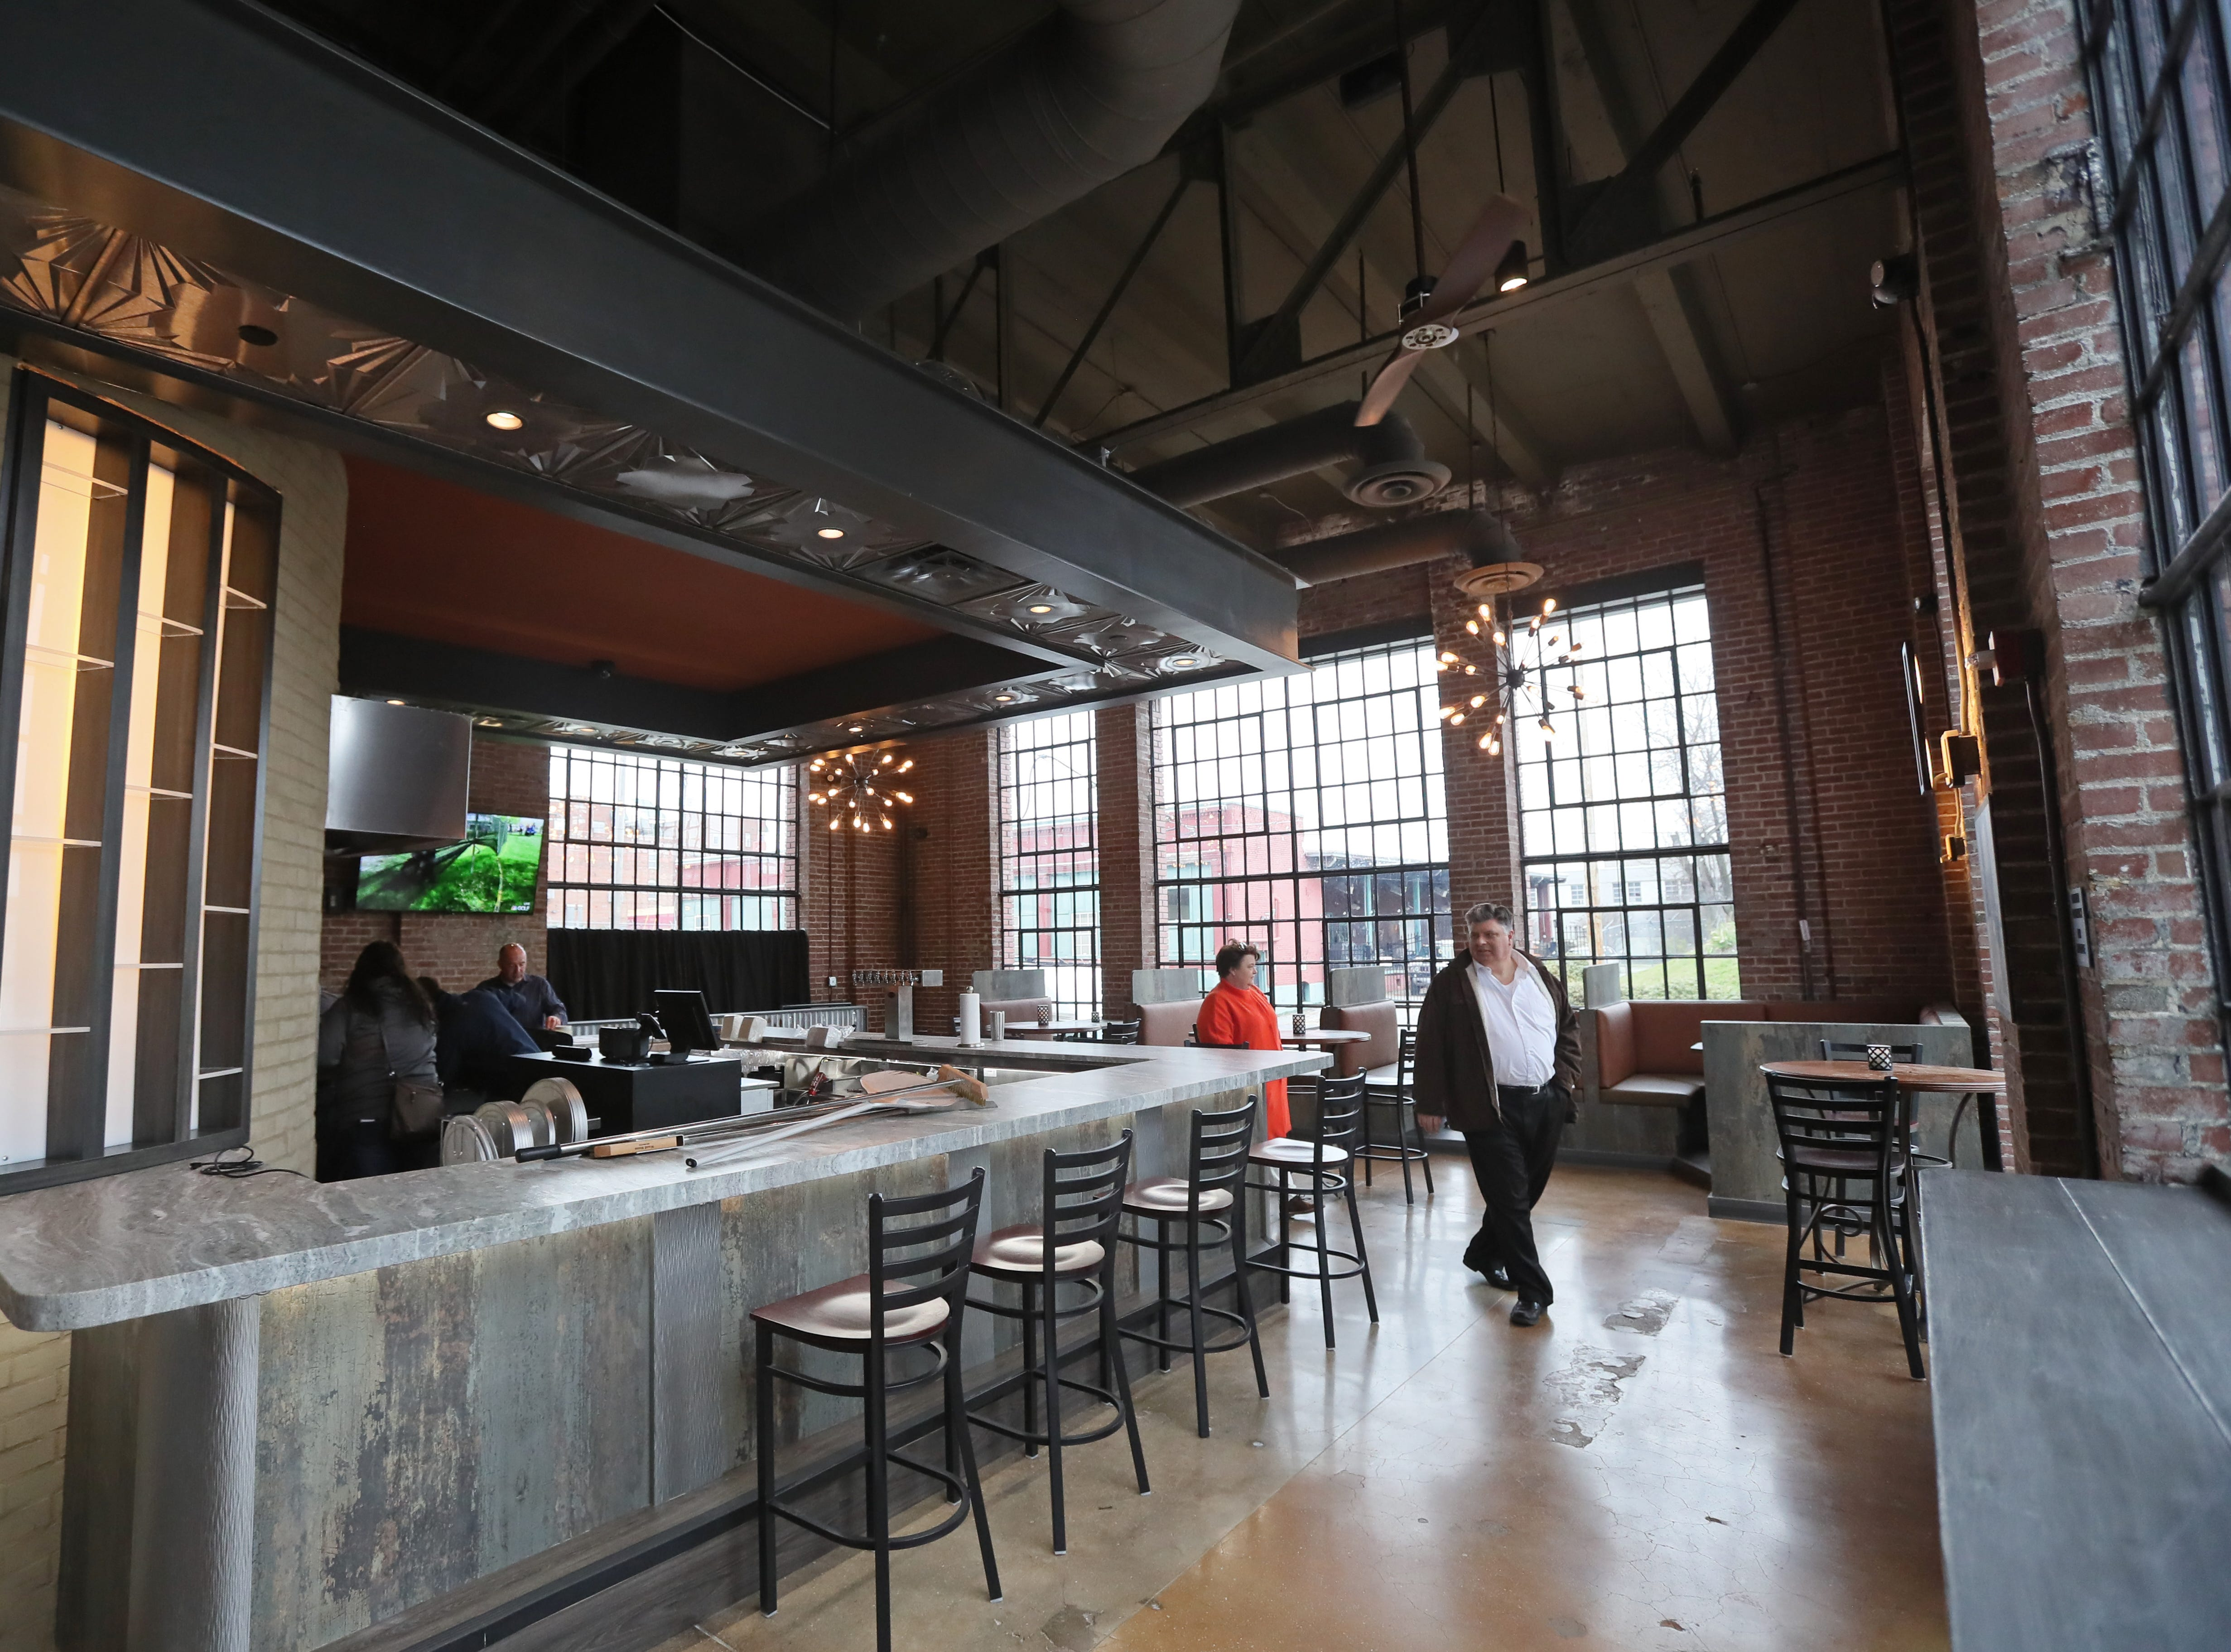 Malco Powerhouse Cinema Bar and Grill opens downtown on Thursday, March 7, 2019.